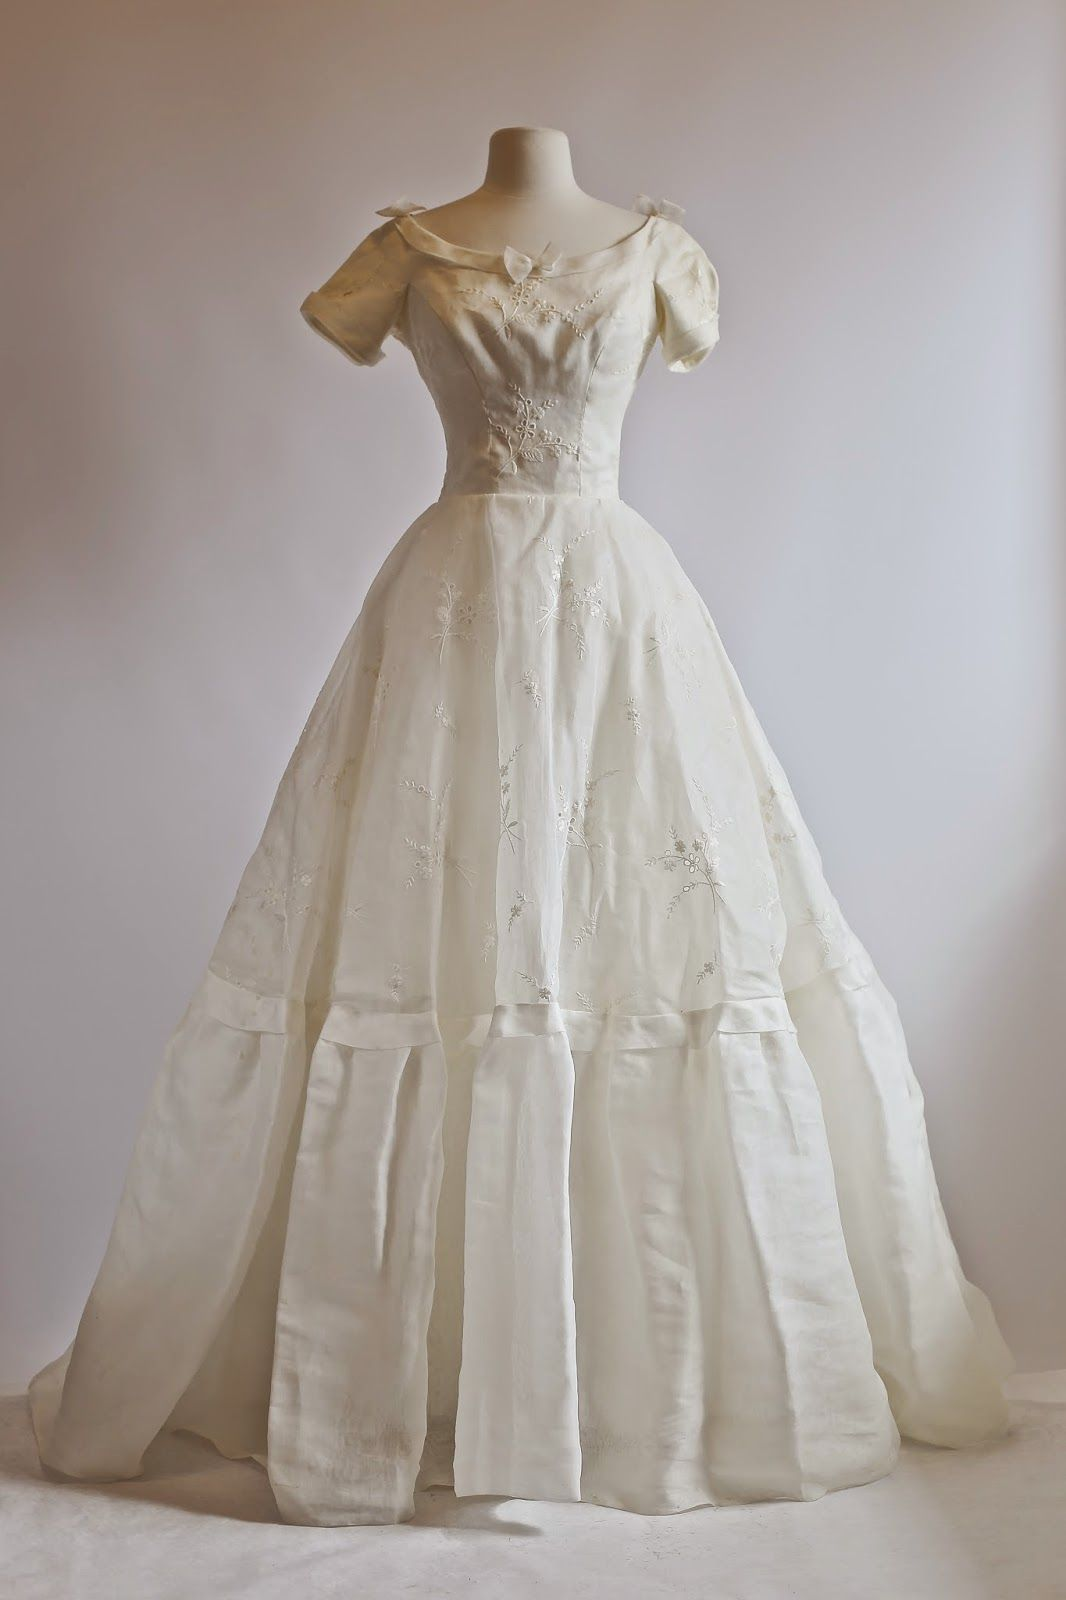 Some Seriously Pretty Dresses Eyelet Wedding Dress Wedding Gowns Vintage Wedding Dress Trends